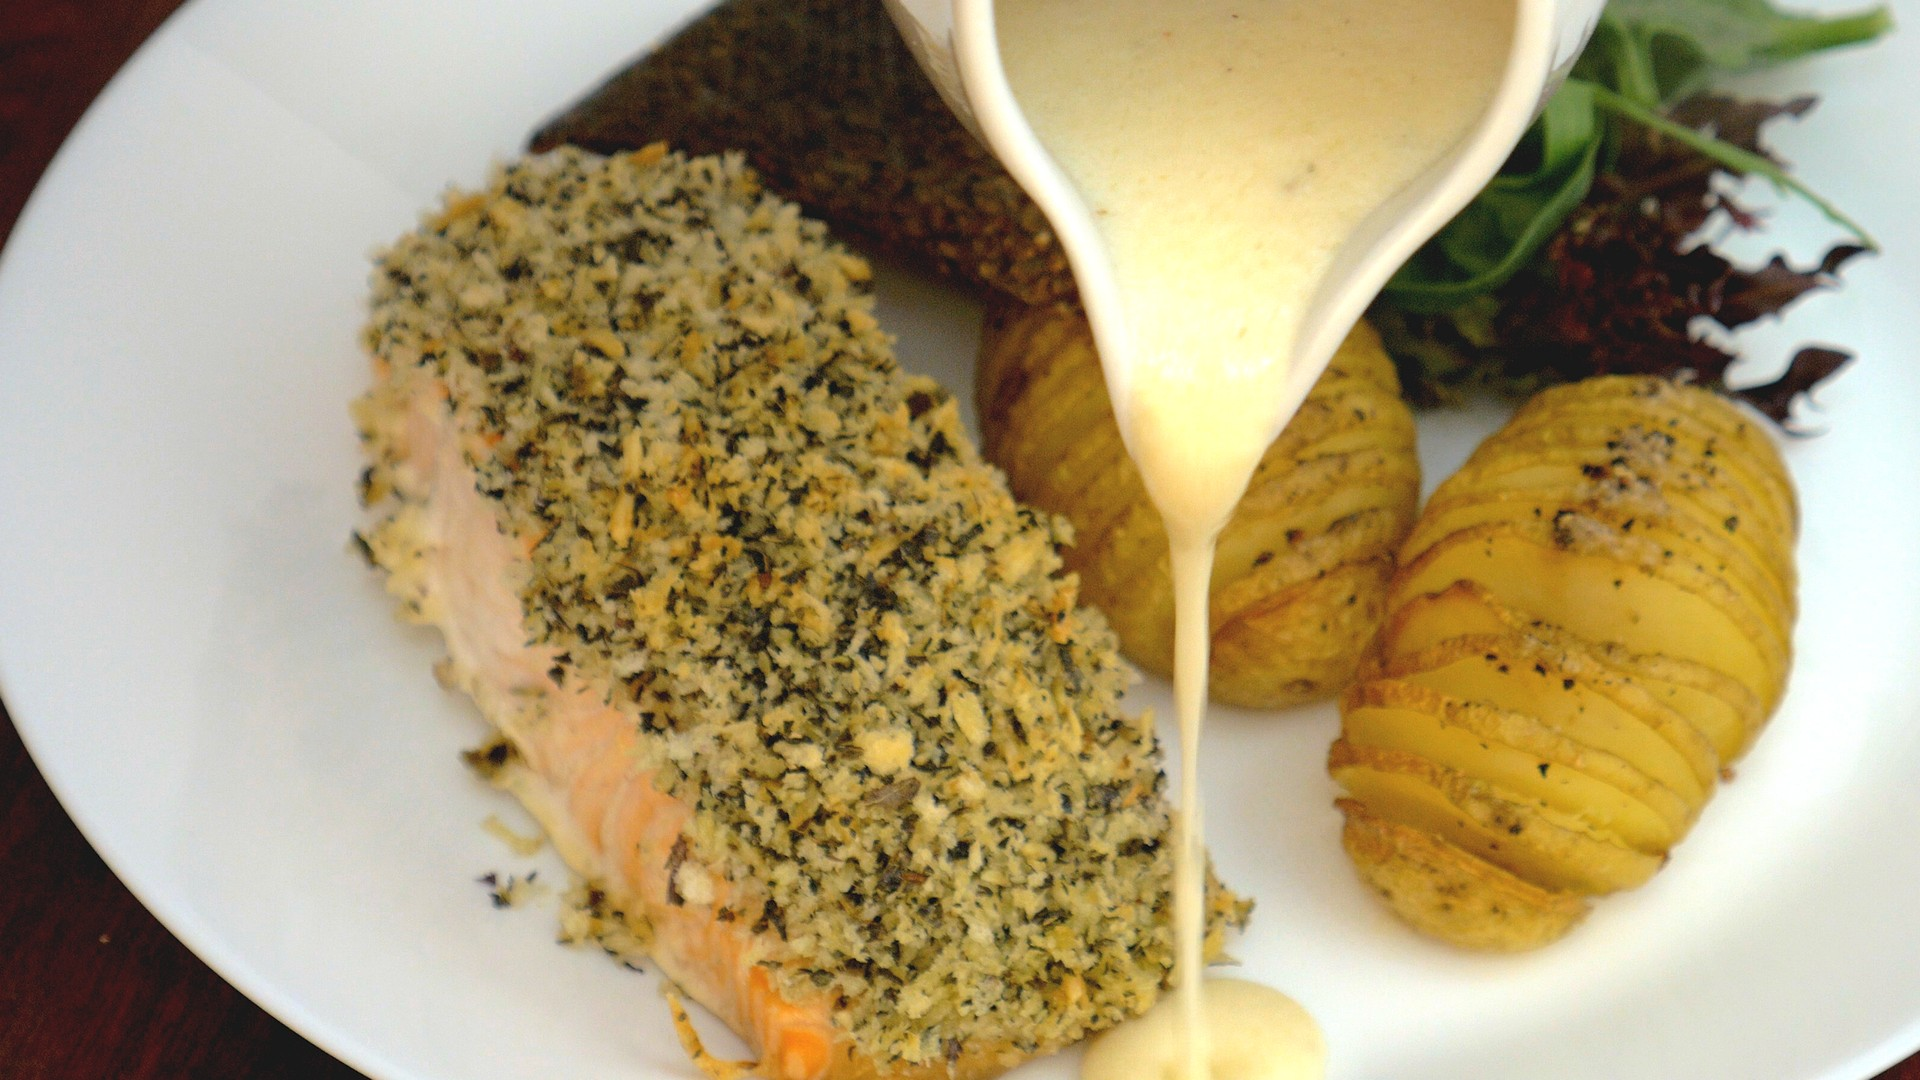 S1E3 Herbs Crusted Salmon Take 5